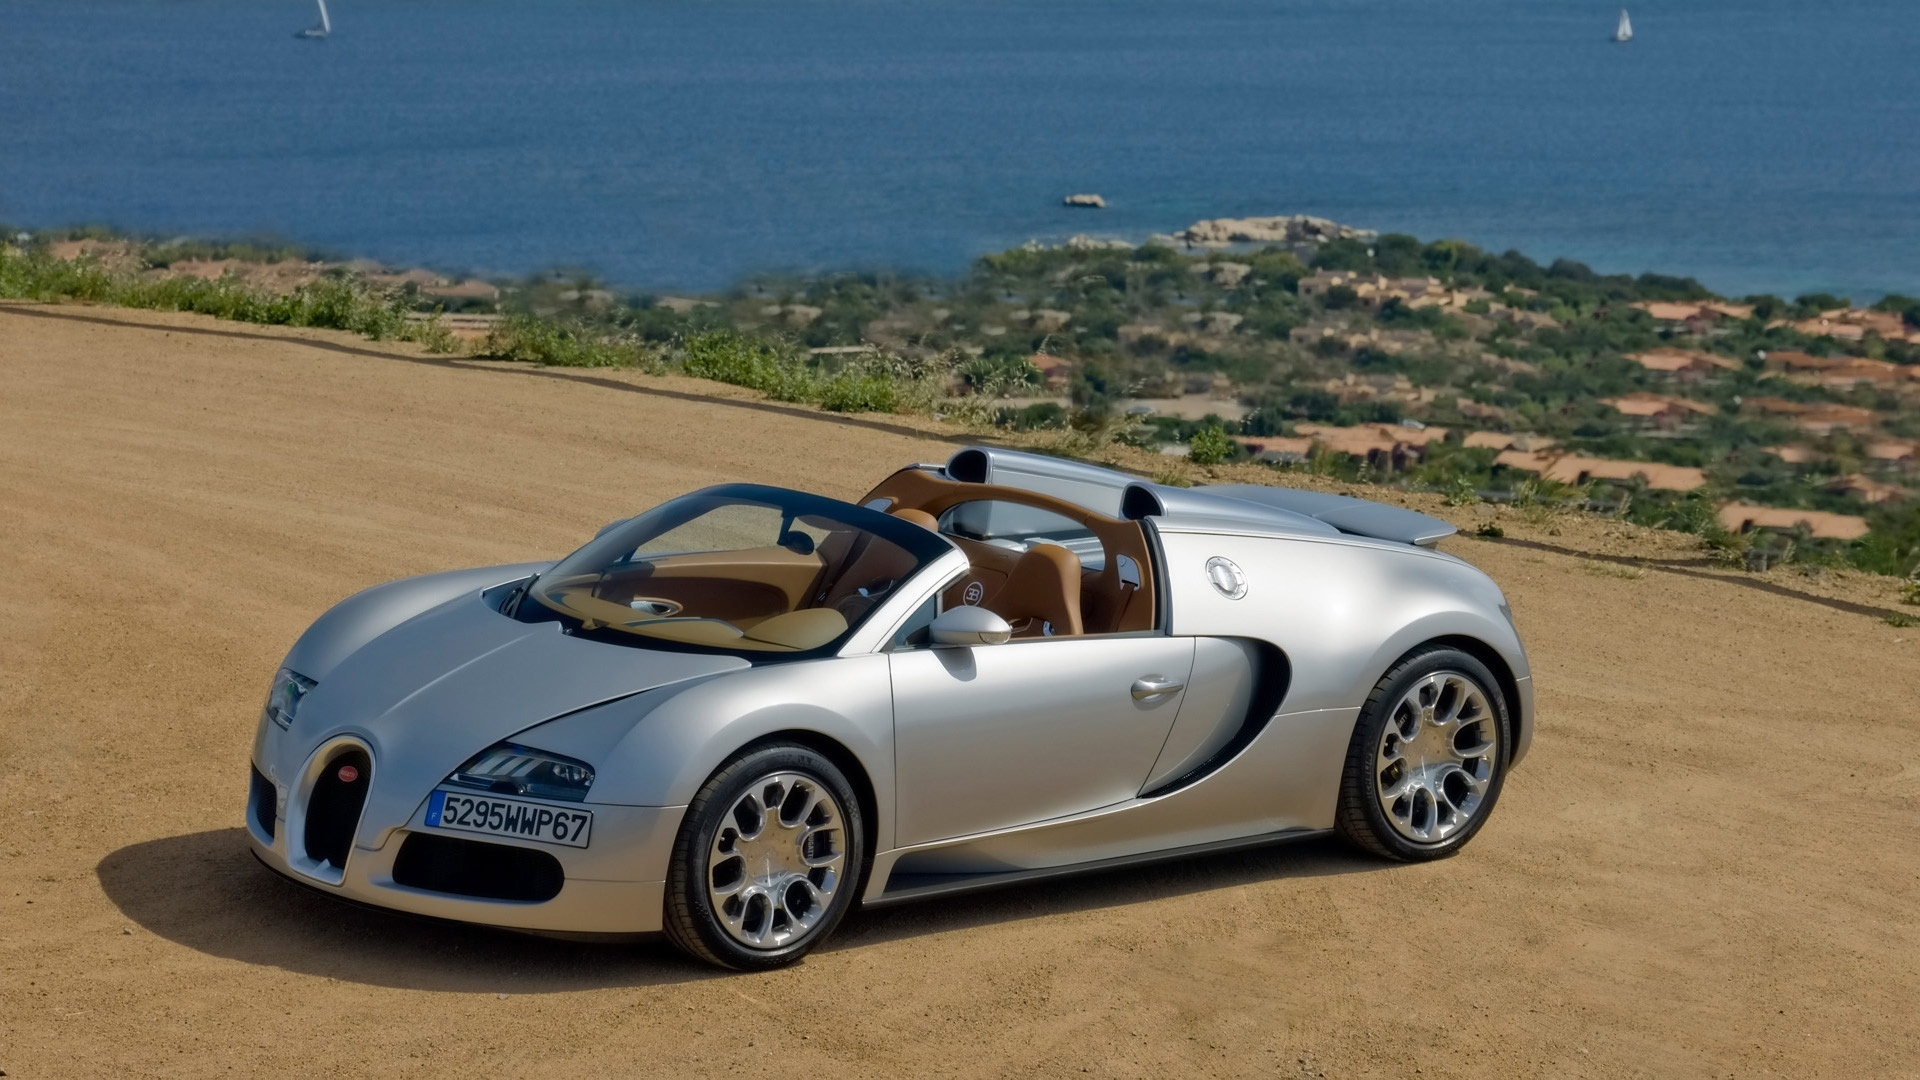 bugatti veyron 164 grand sport 2010 in sardinia front and side panorama high definition. Black Bedroom Furniture Sets. Home Design Ideas